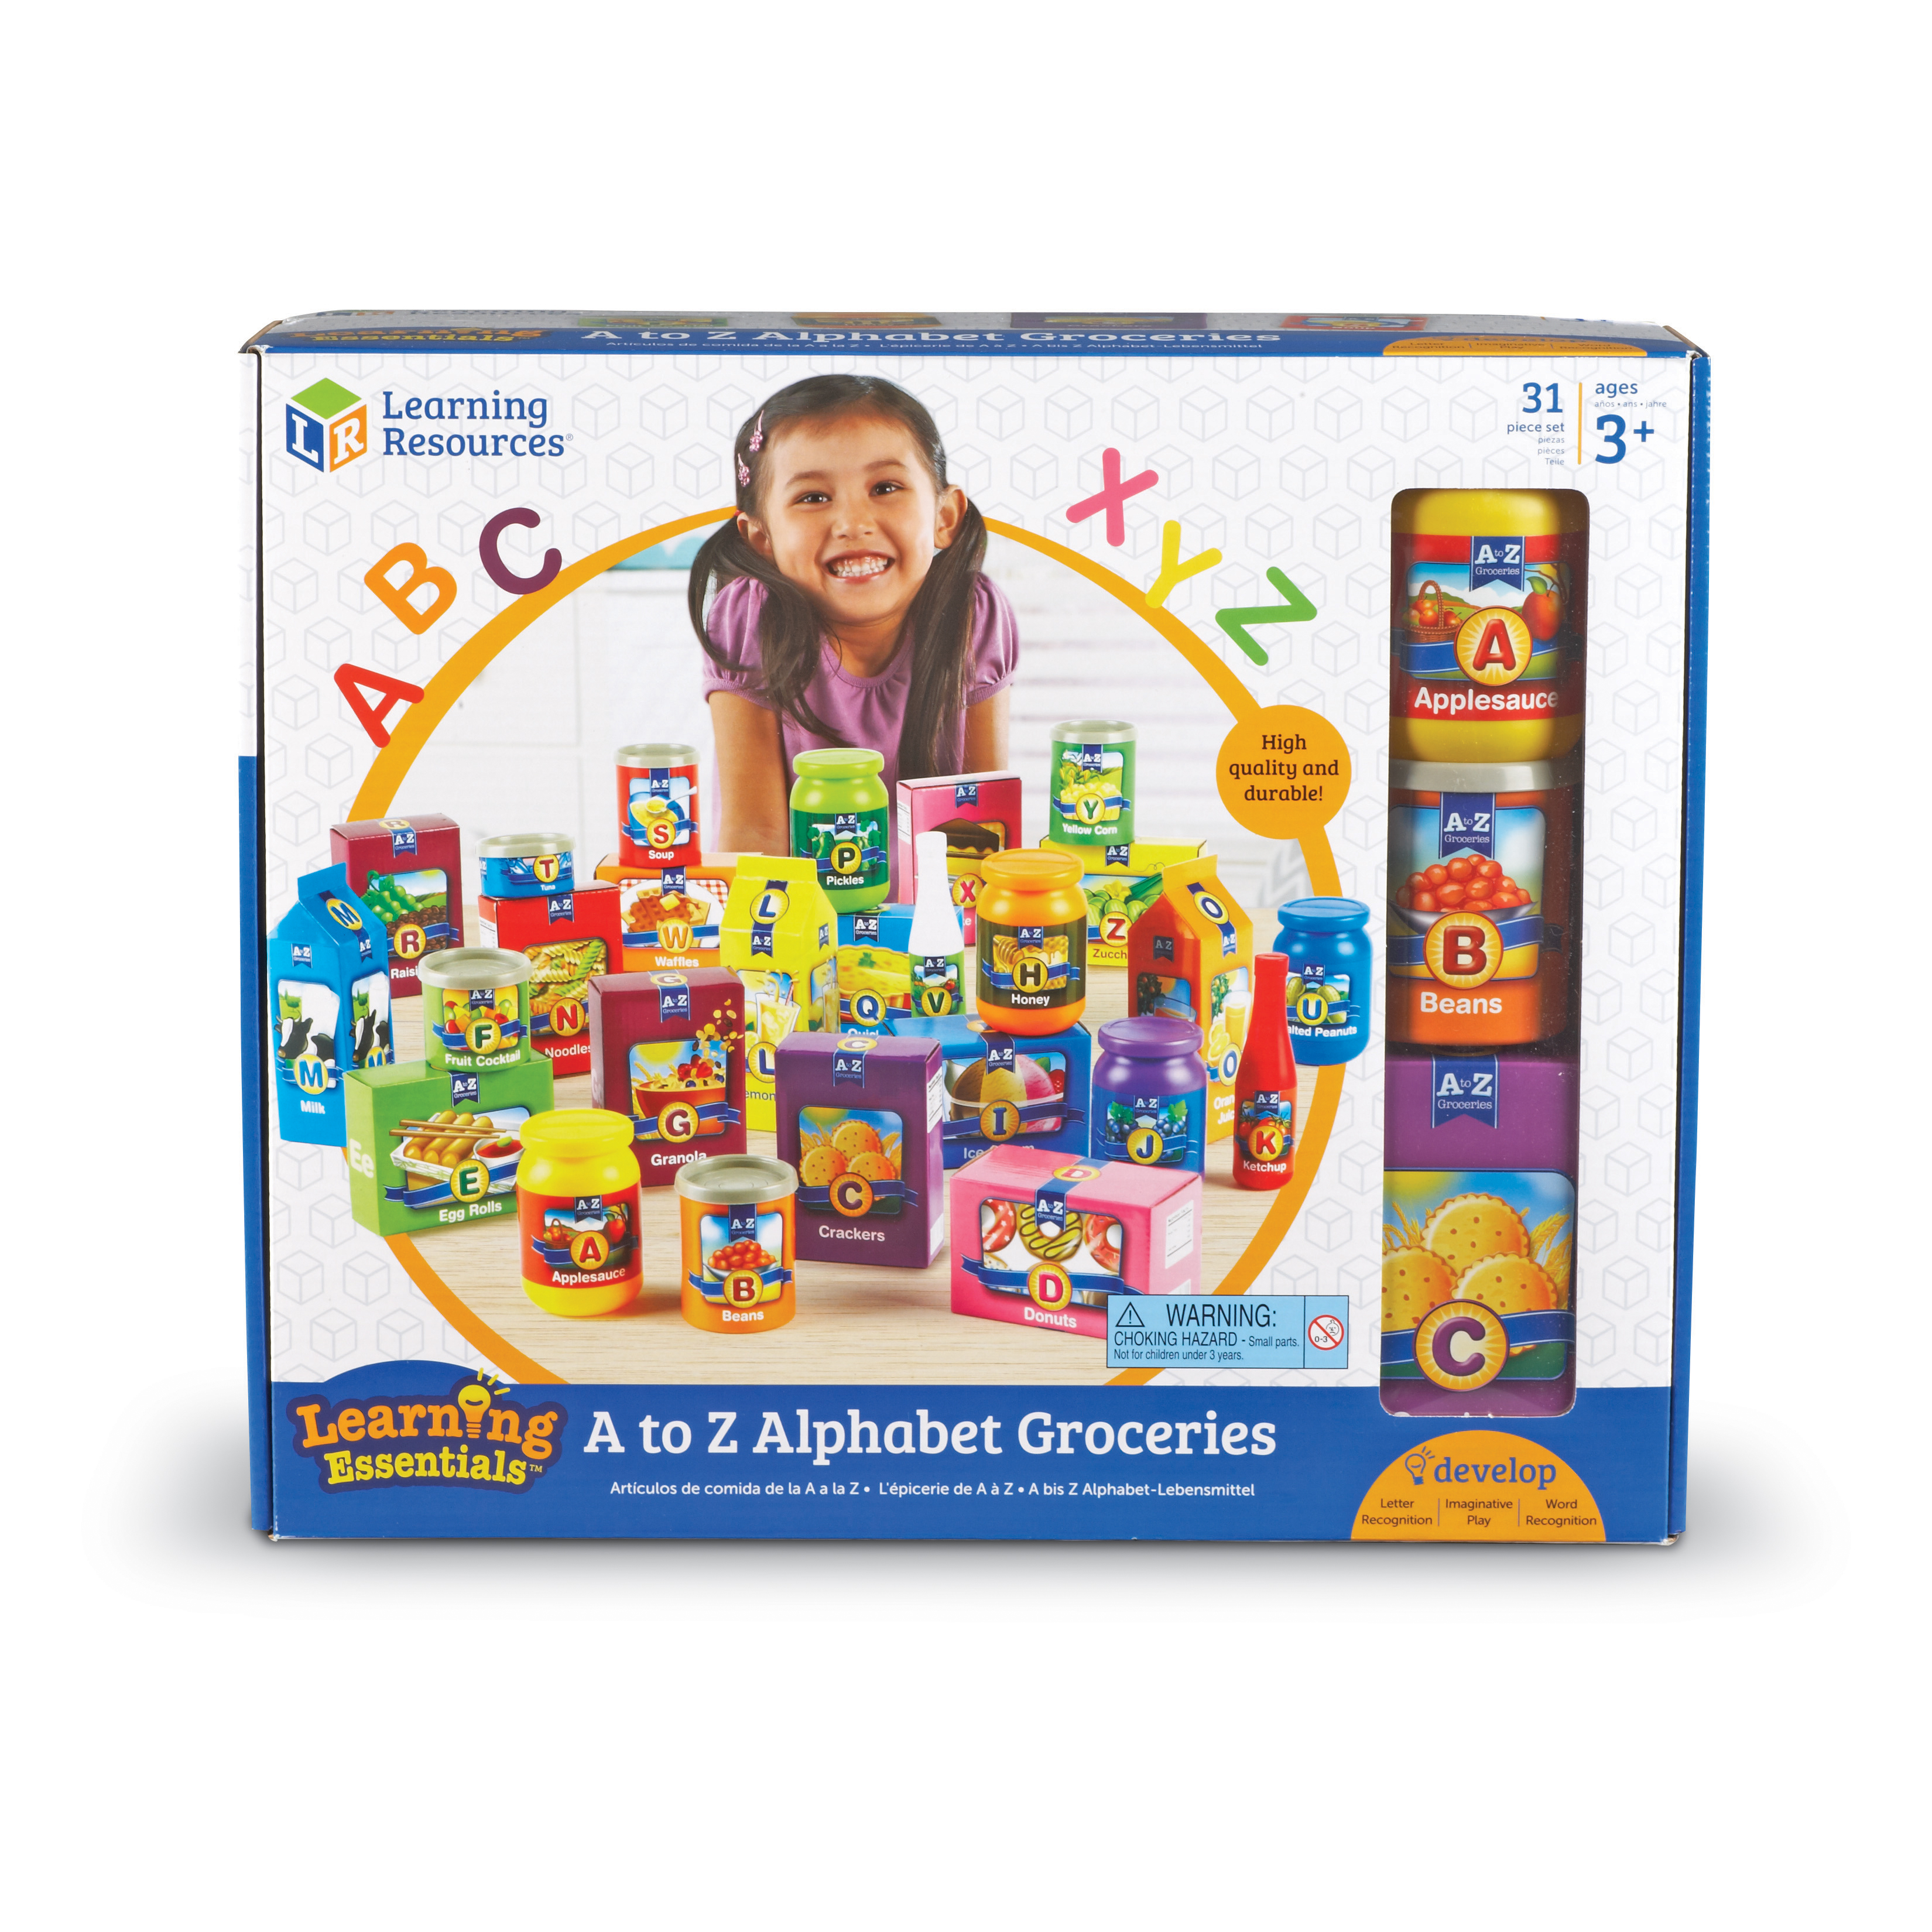 Learning Essentials - A to Z Alphabet Groceries